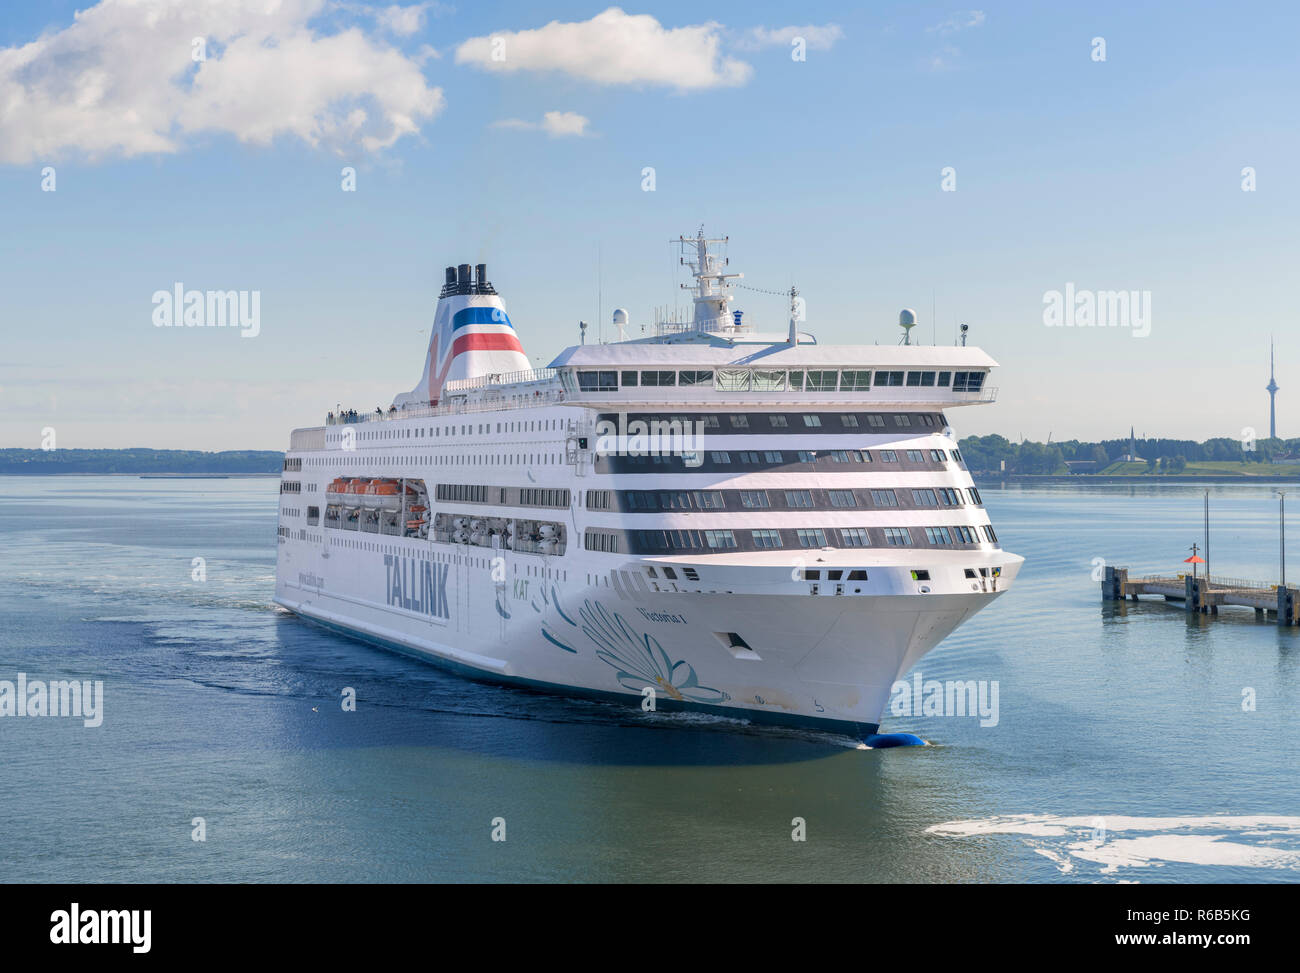 Tallink ferry Victoria I entering the port of Tallinn, Estonia - Stock Image